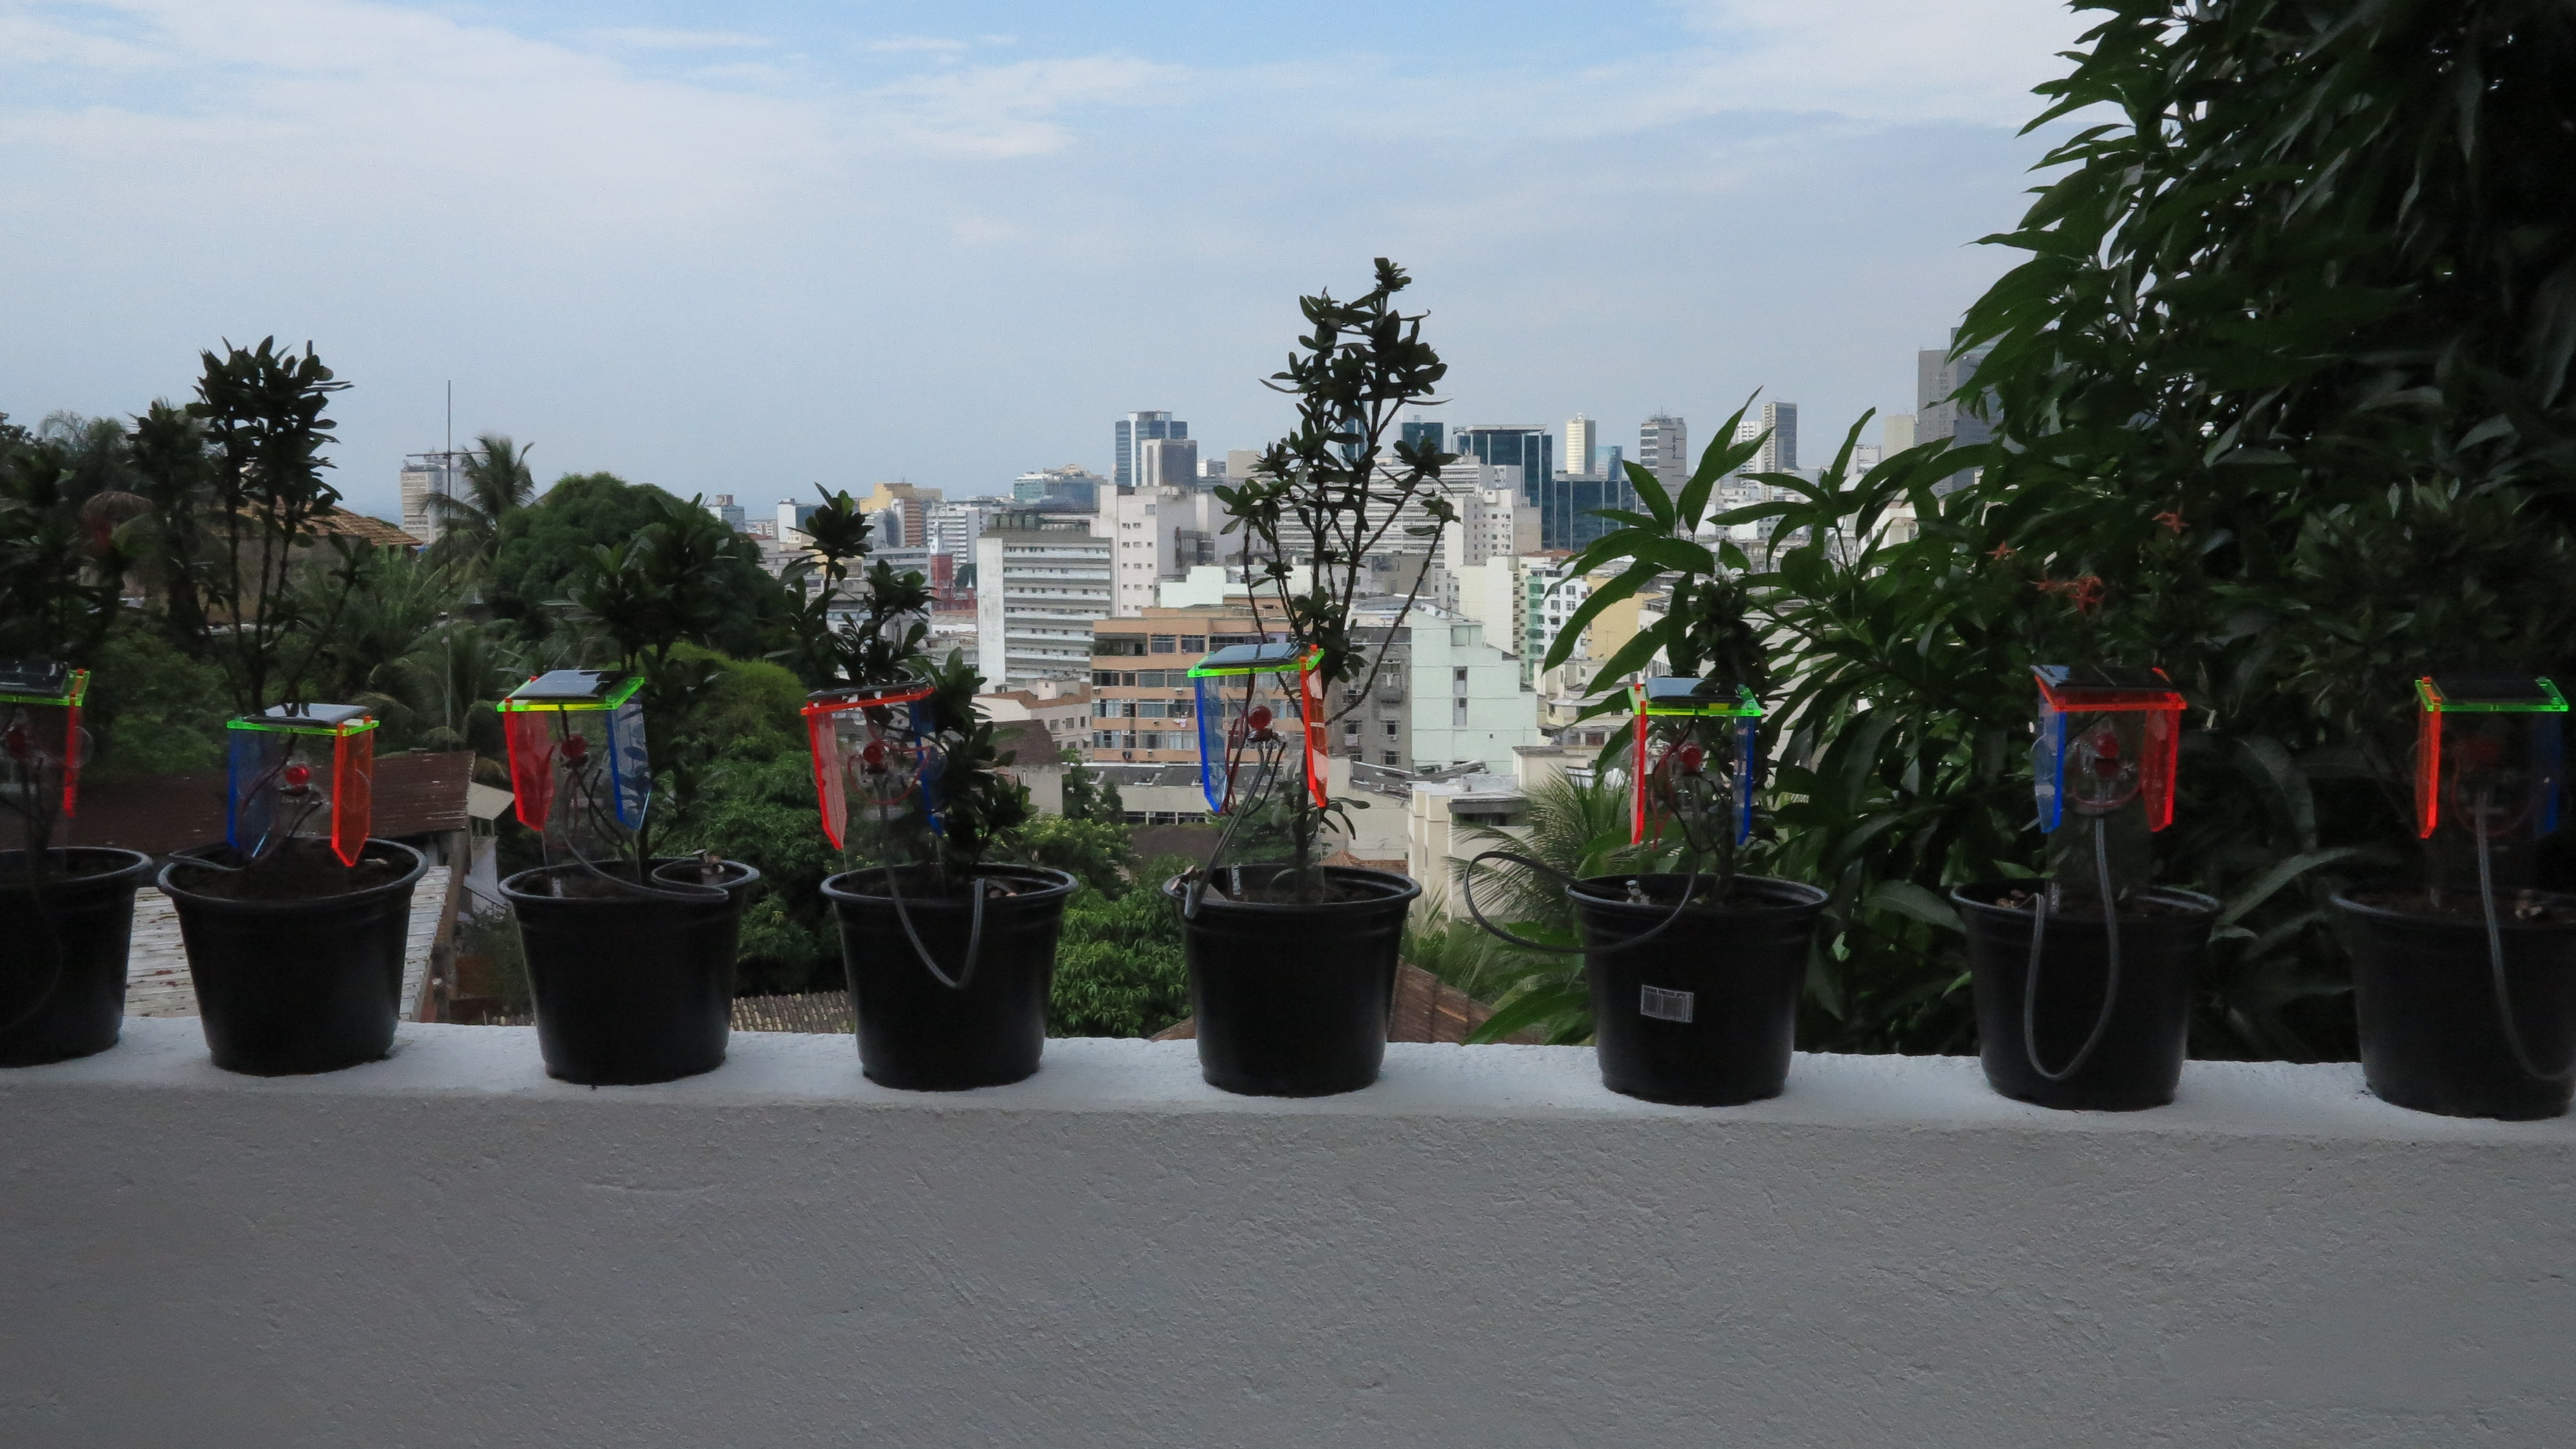 All the assembled thirsty plants kits.